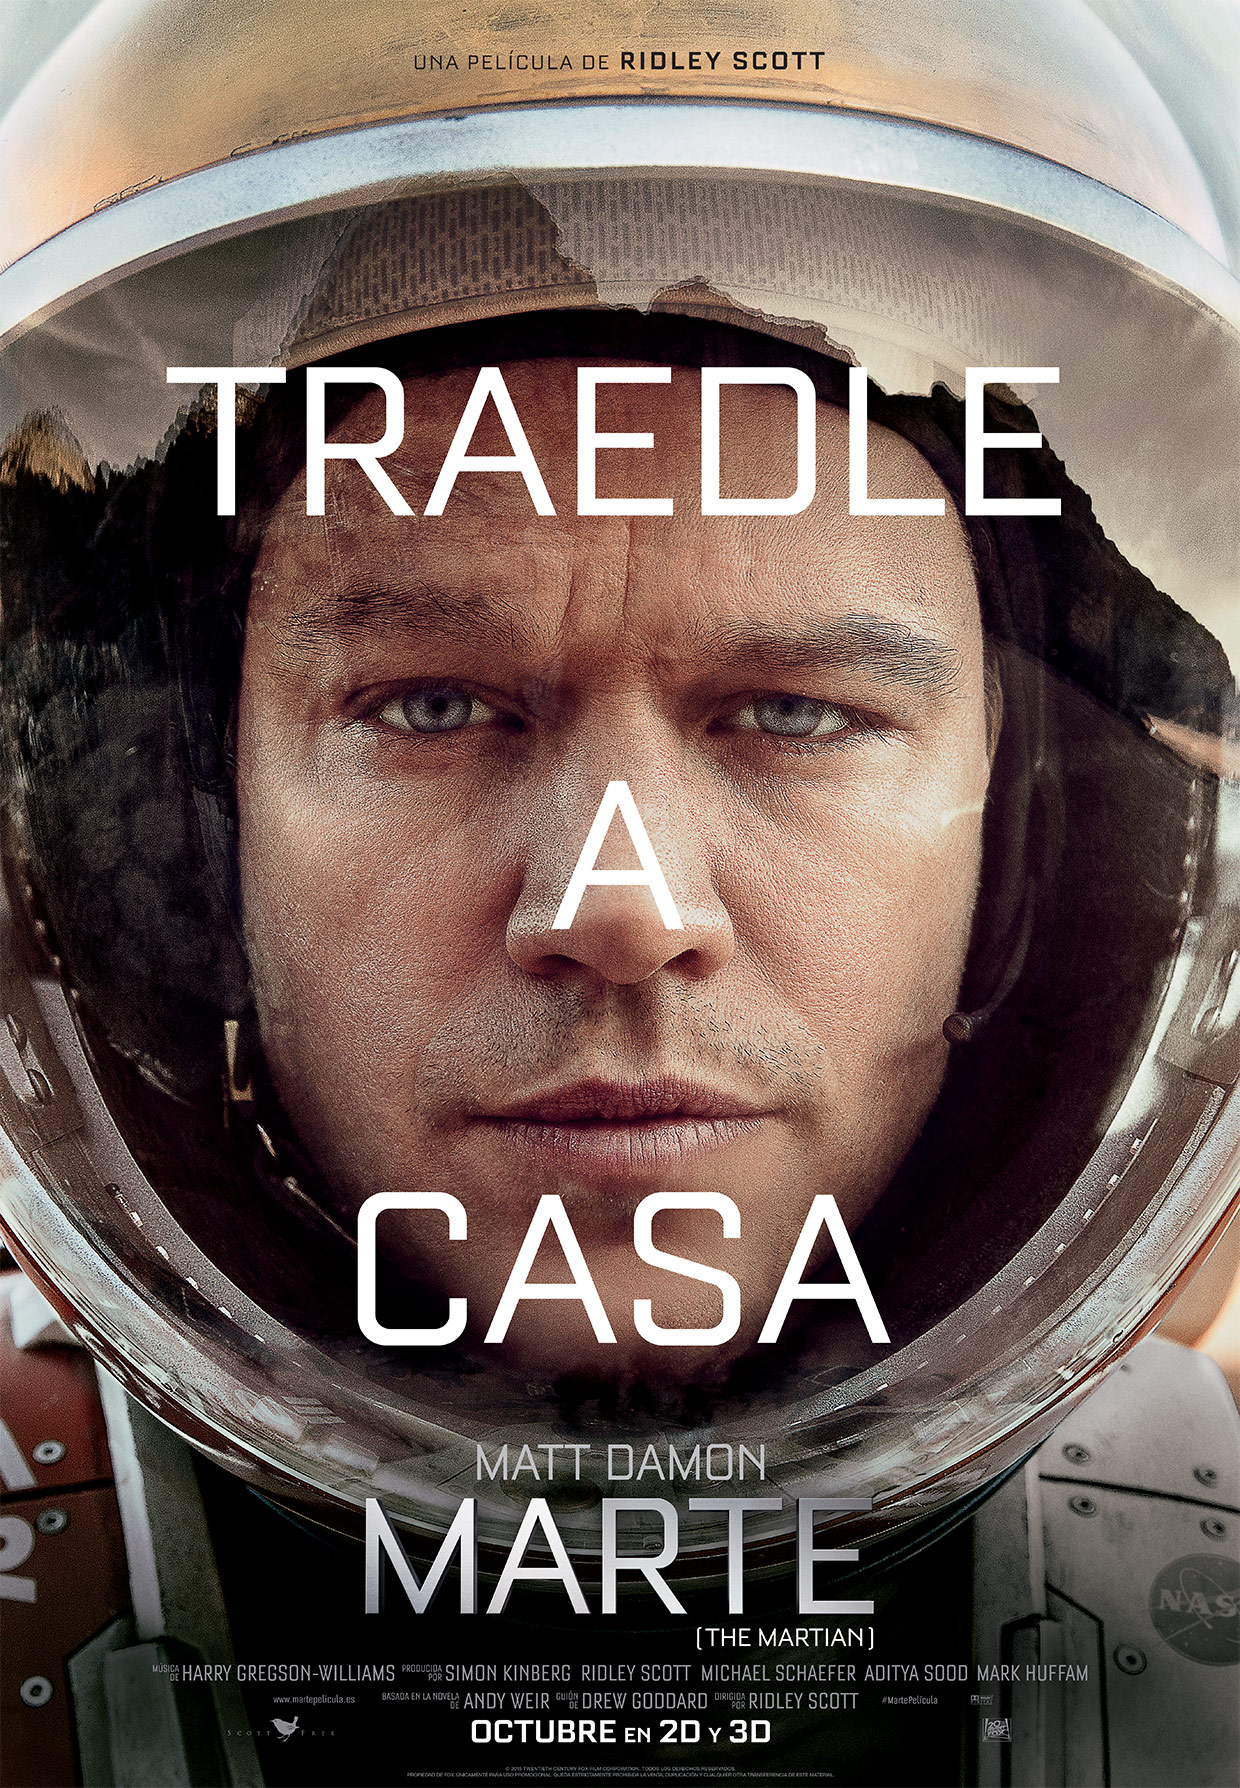 Marte (The Martian)_Poster Teaser